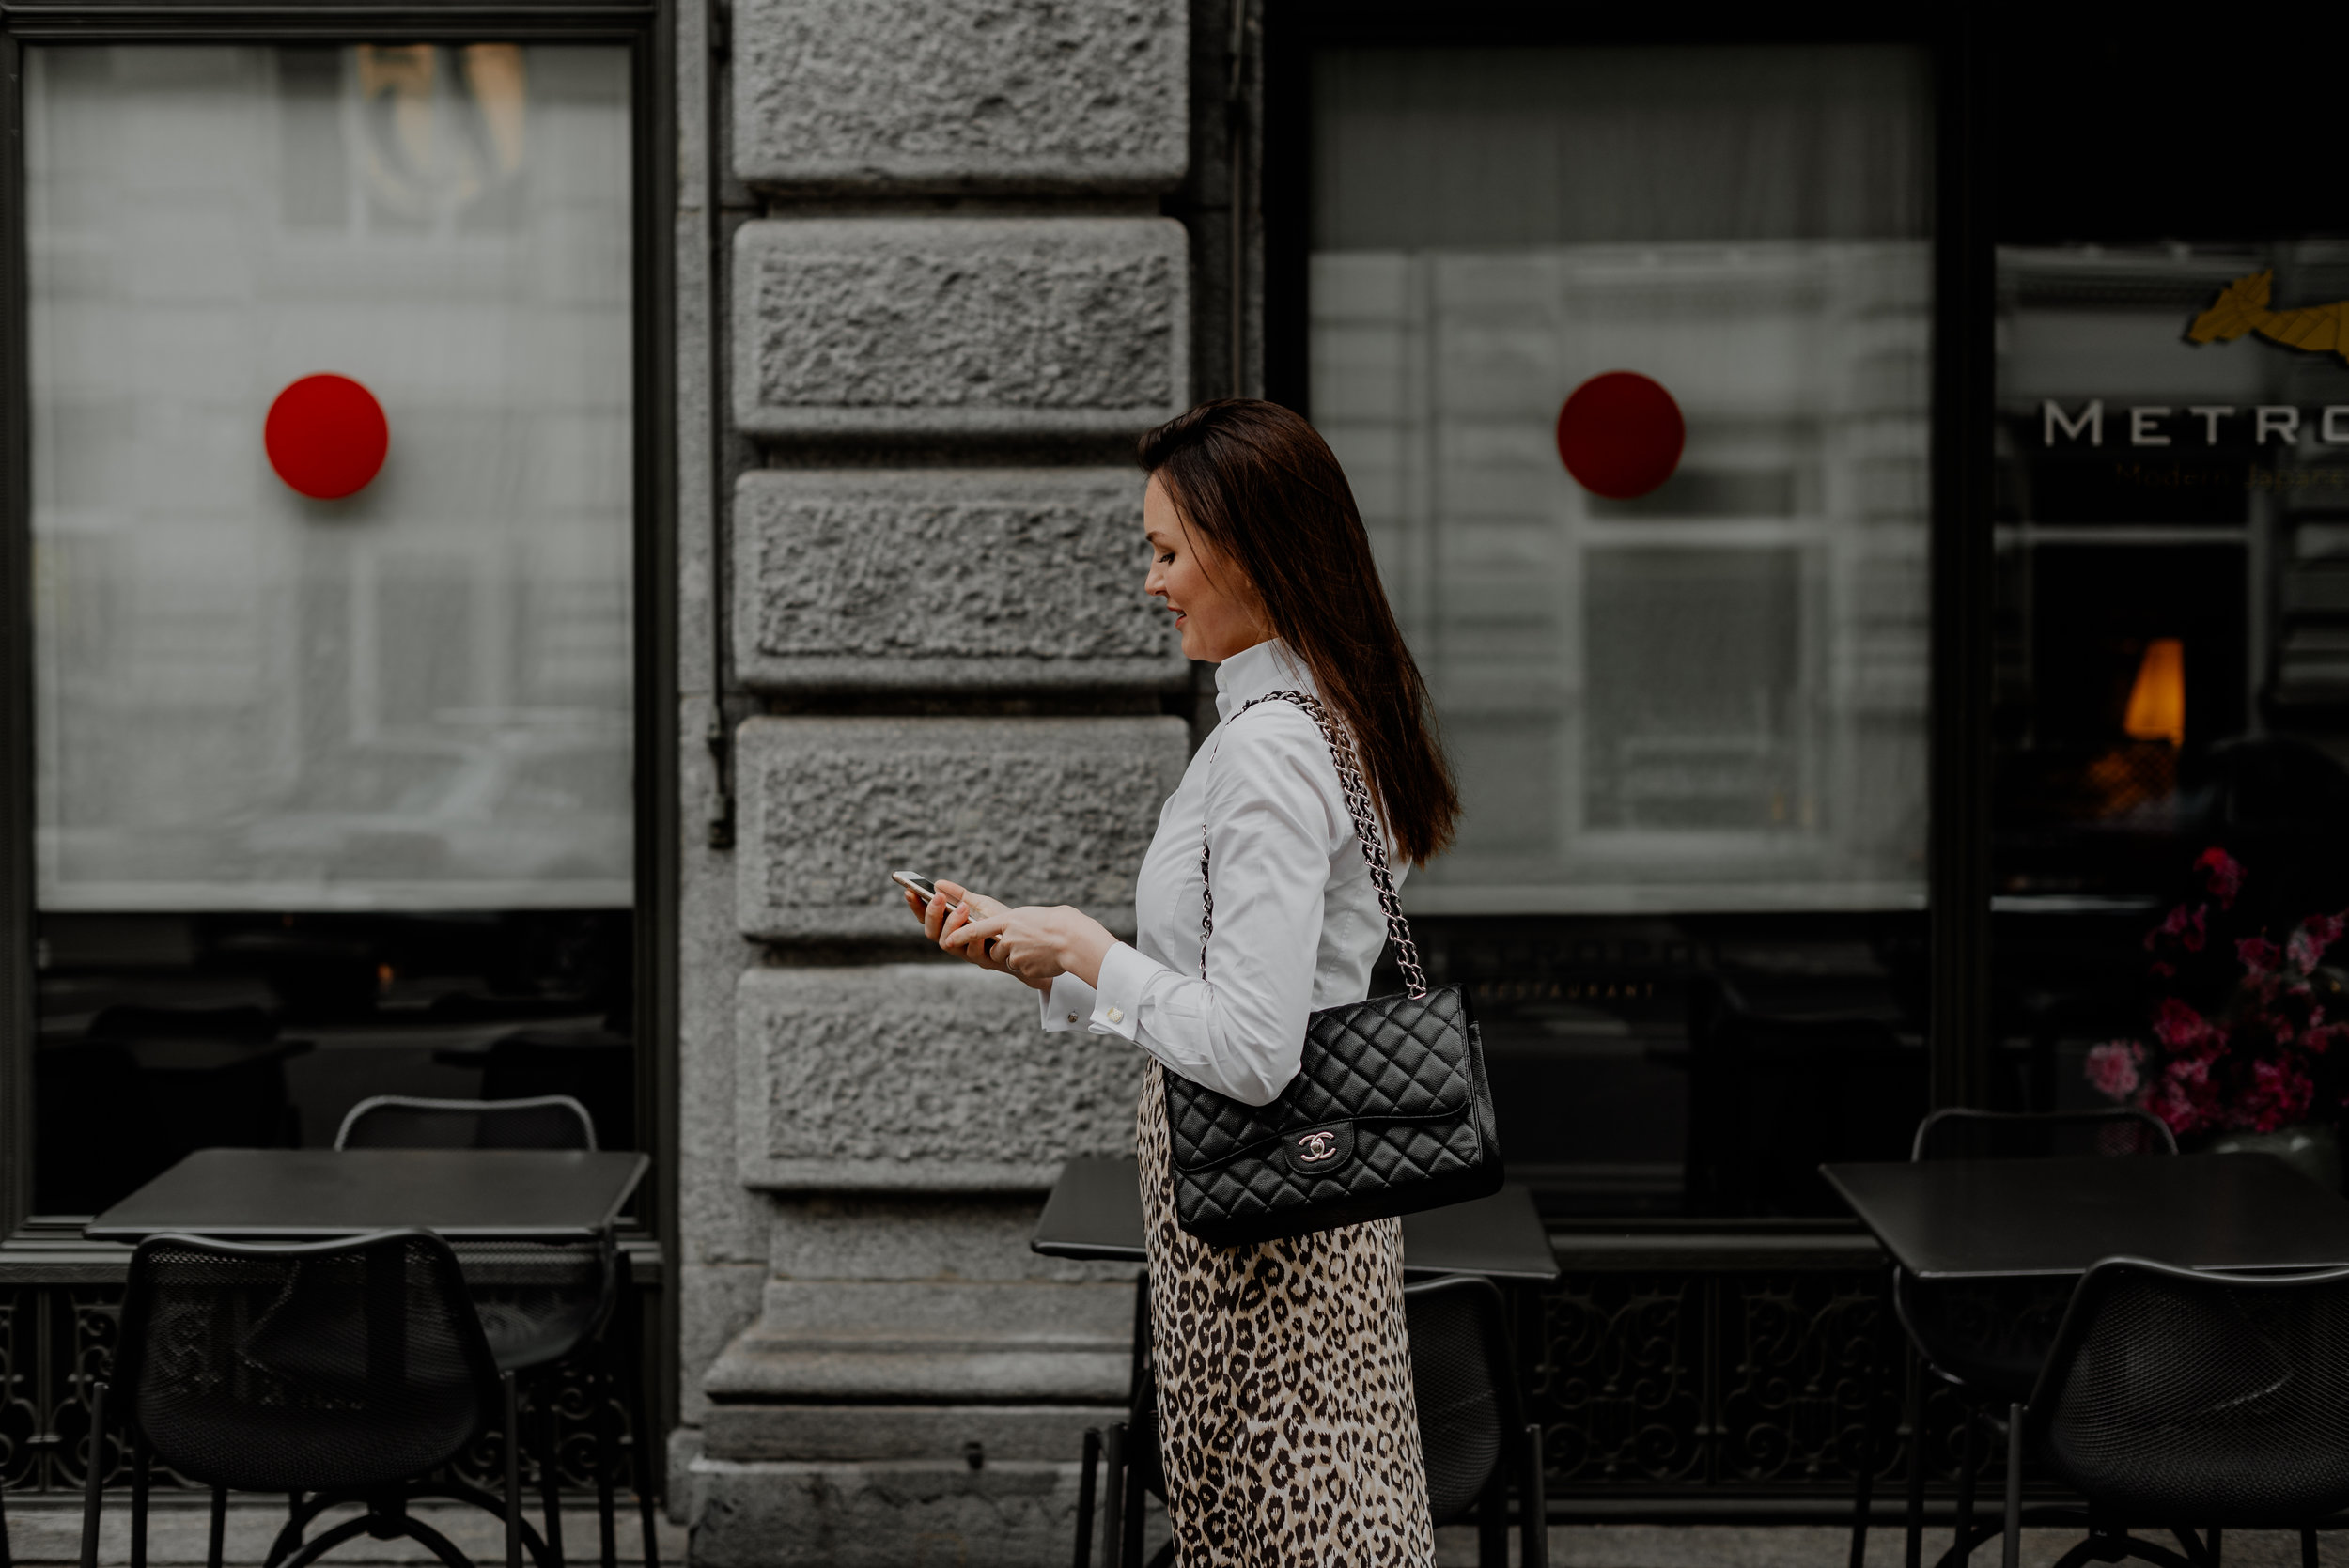 Matching my white shirt, leopard skirt and black Chanel bag.